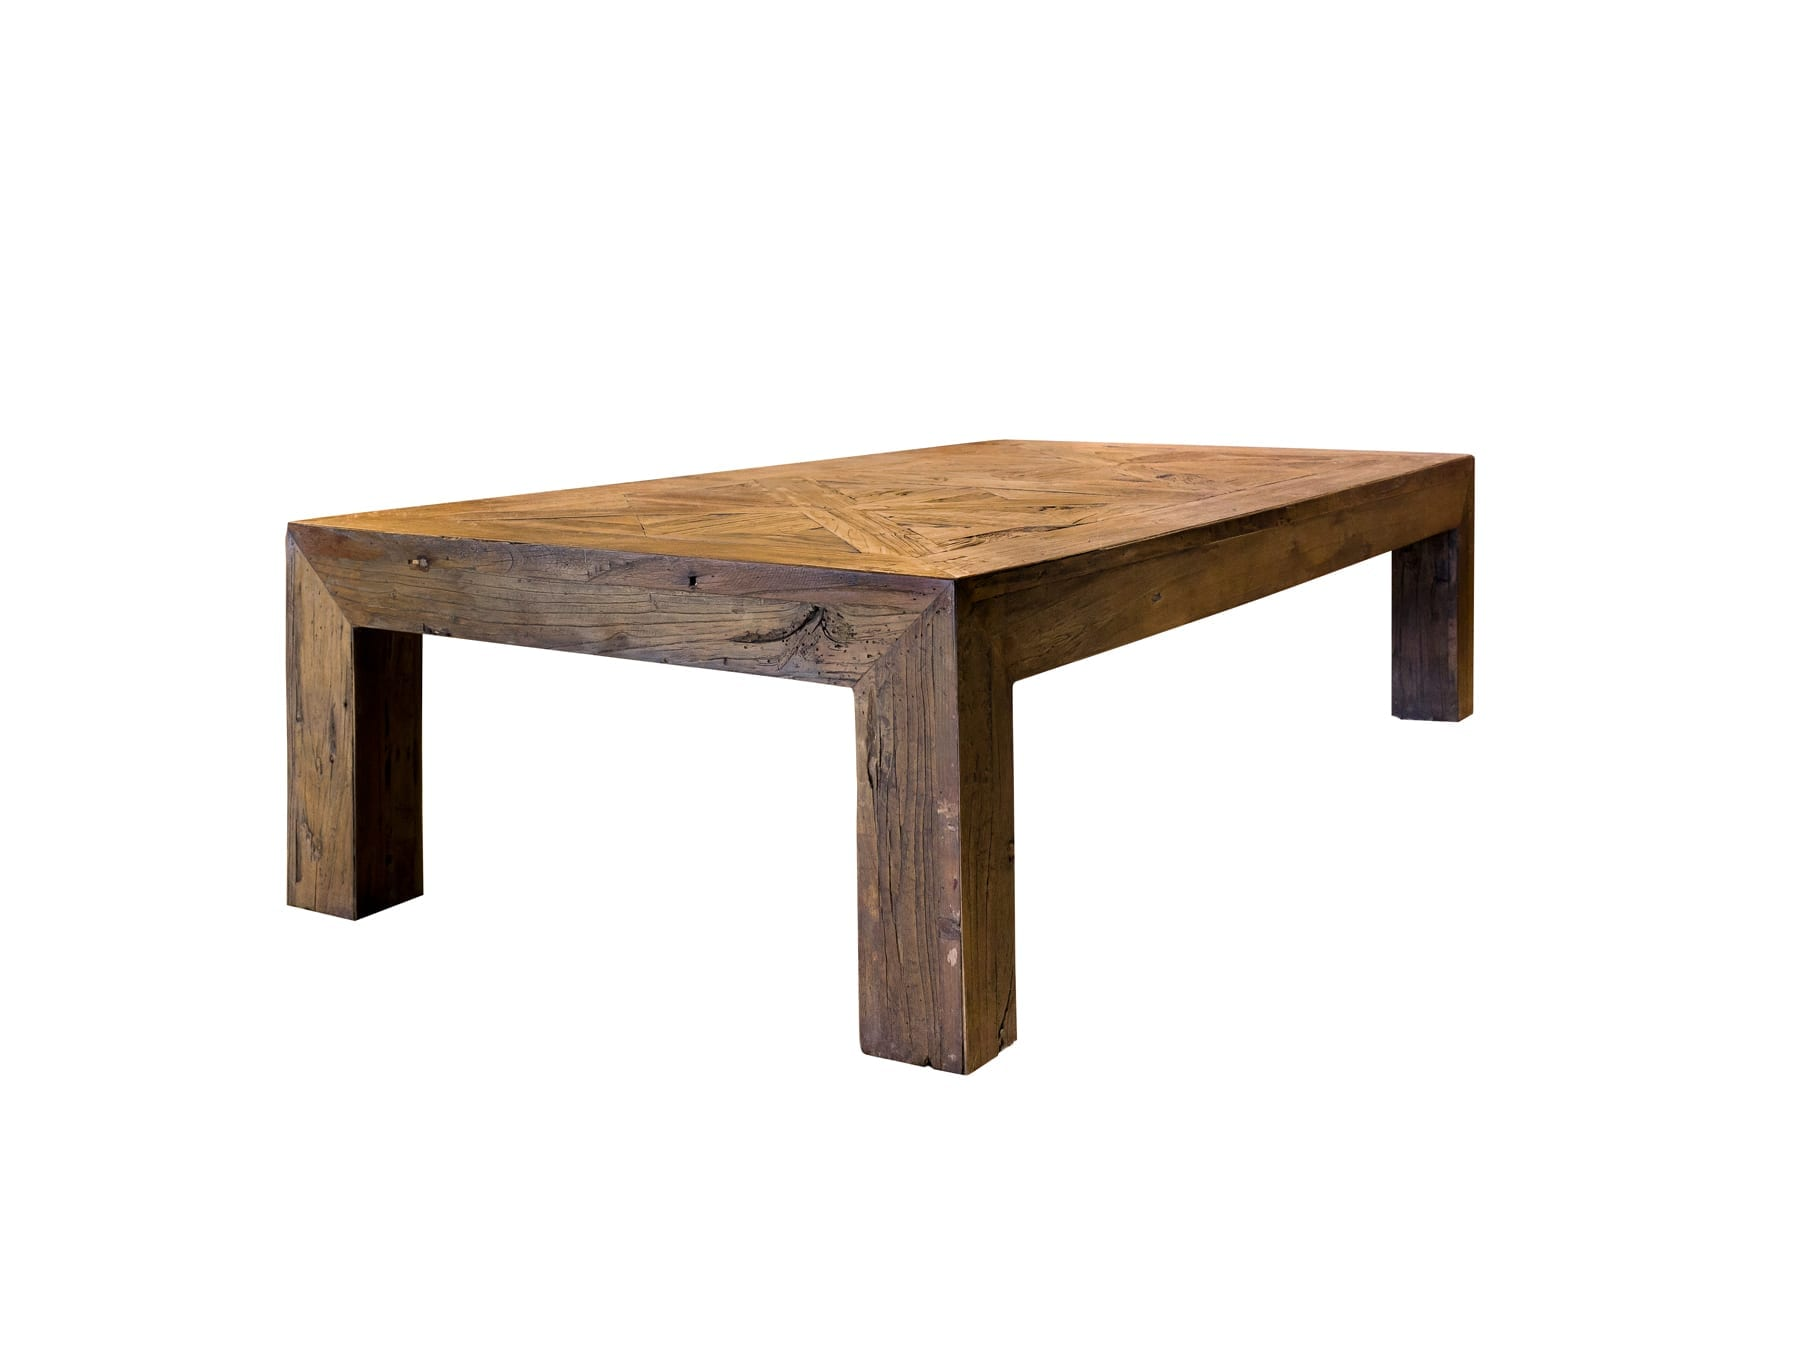 Global Design Elm Coffee Table available at McKenzie & Willis